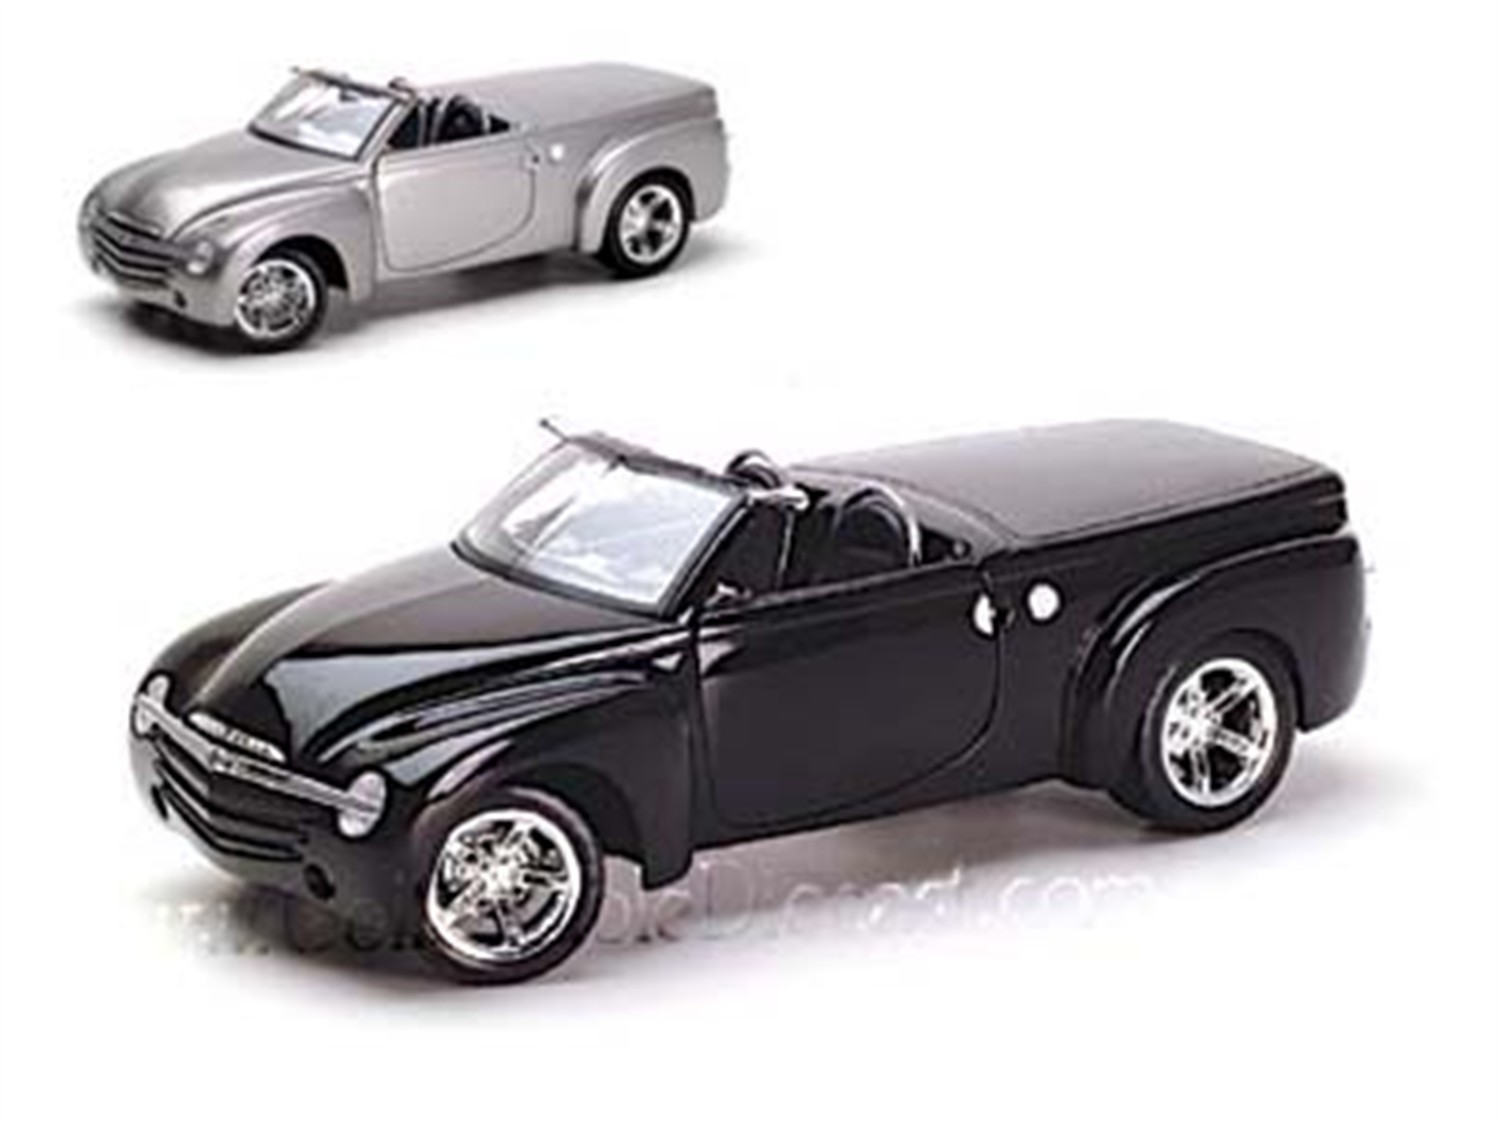 2000 Chevy SSR Convertible